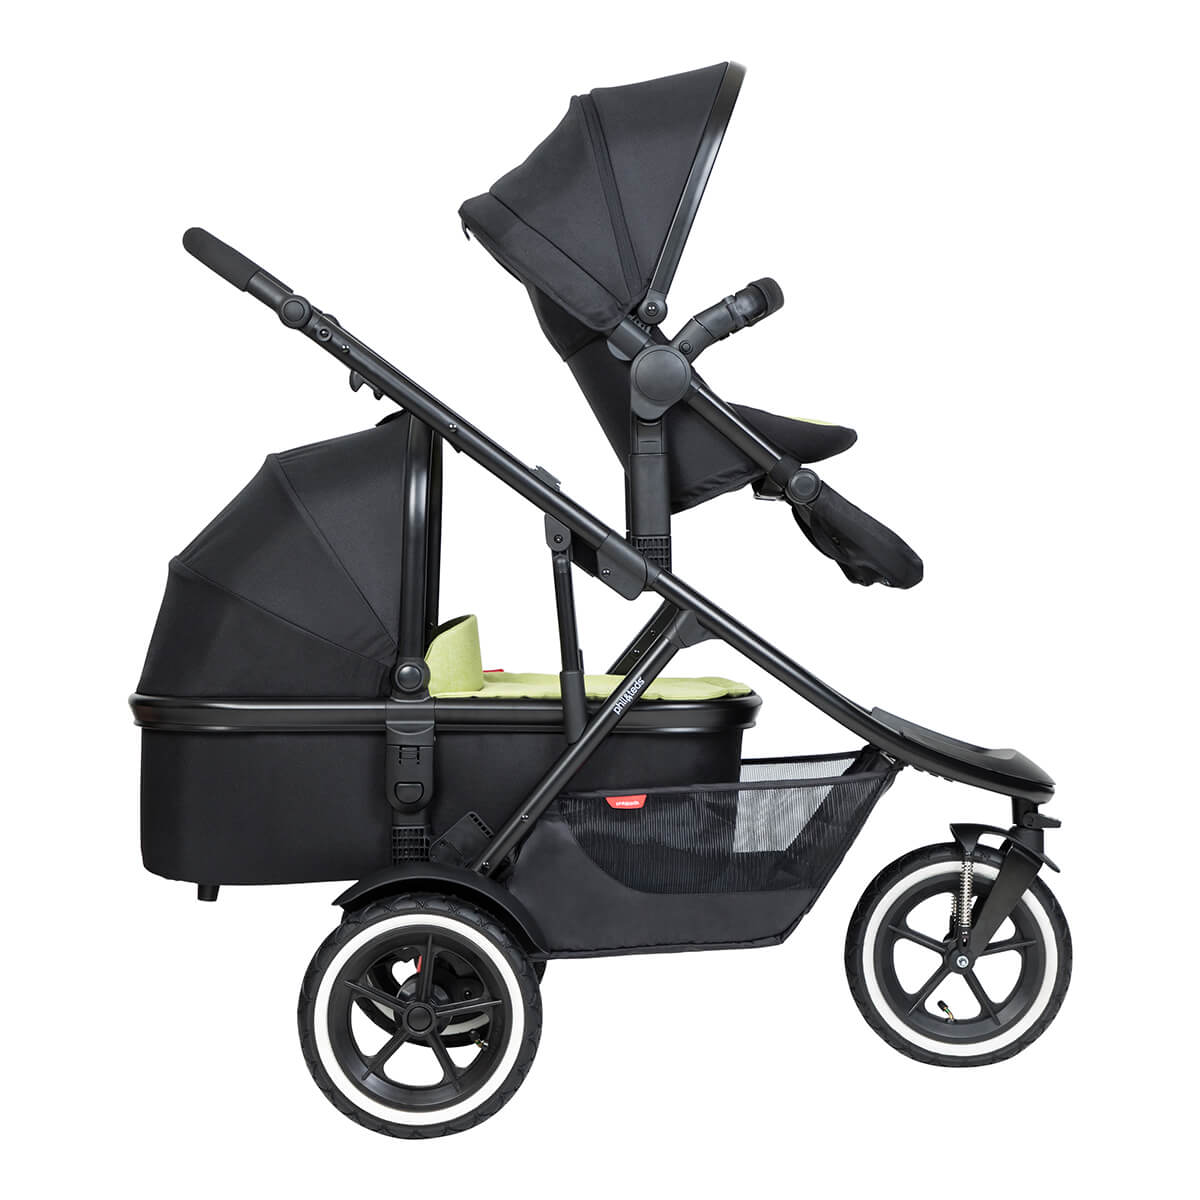 https://cdn.accentuate.io/4511392170081/19793939726506/philteds-sport-buggy-with-double-kit-extended-clip-and-snug-carrycot-side-view-v1626485308763.jpg?1200x1200